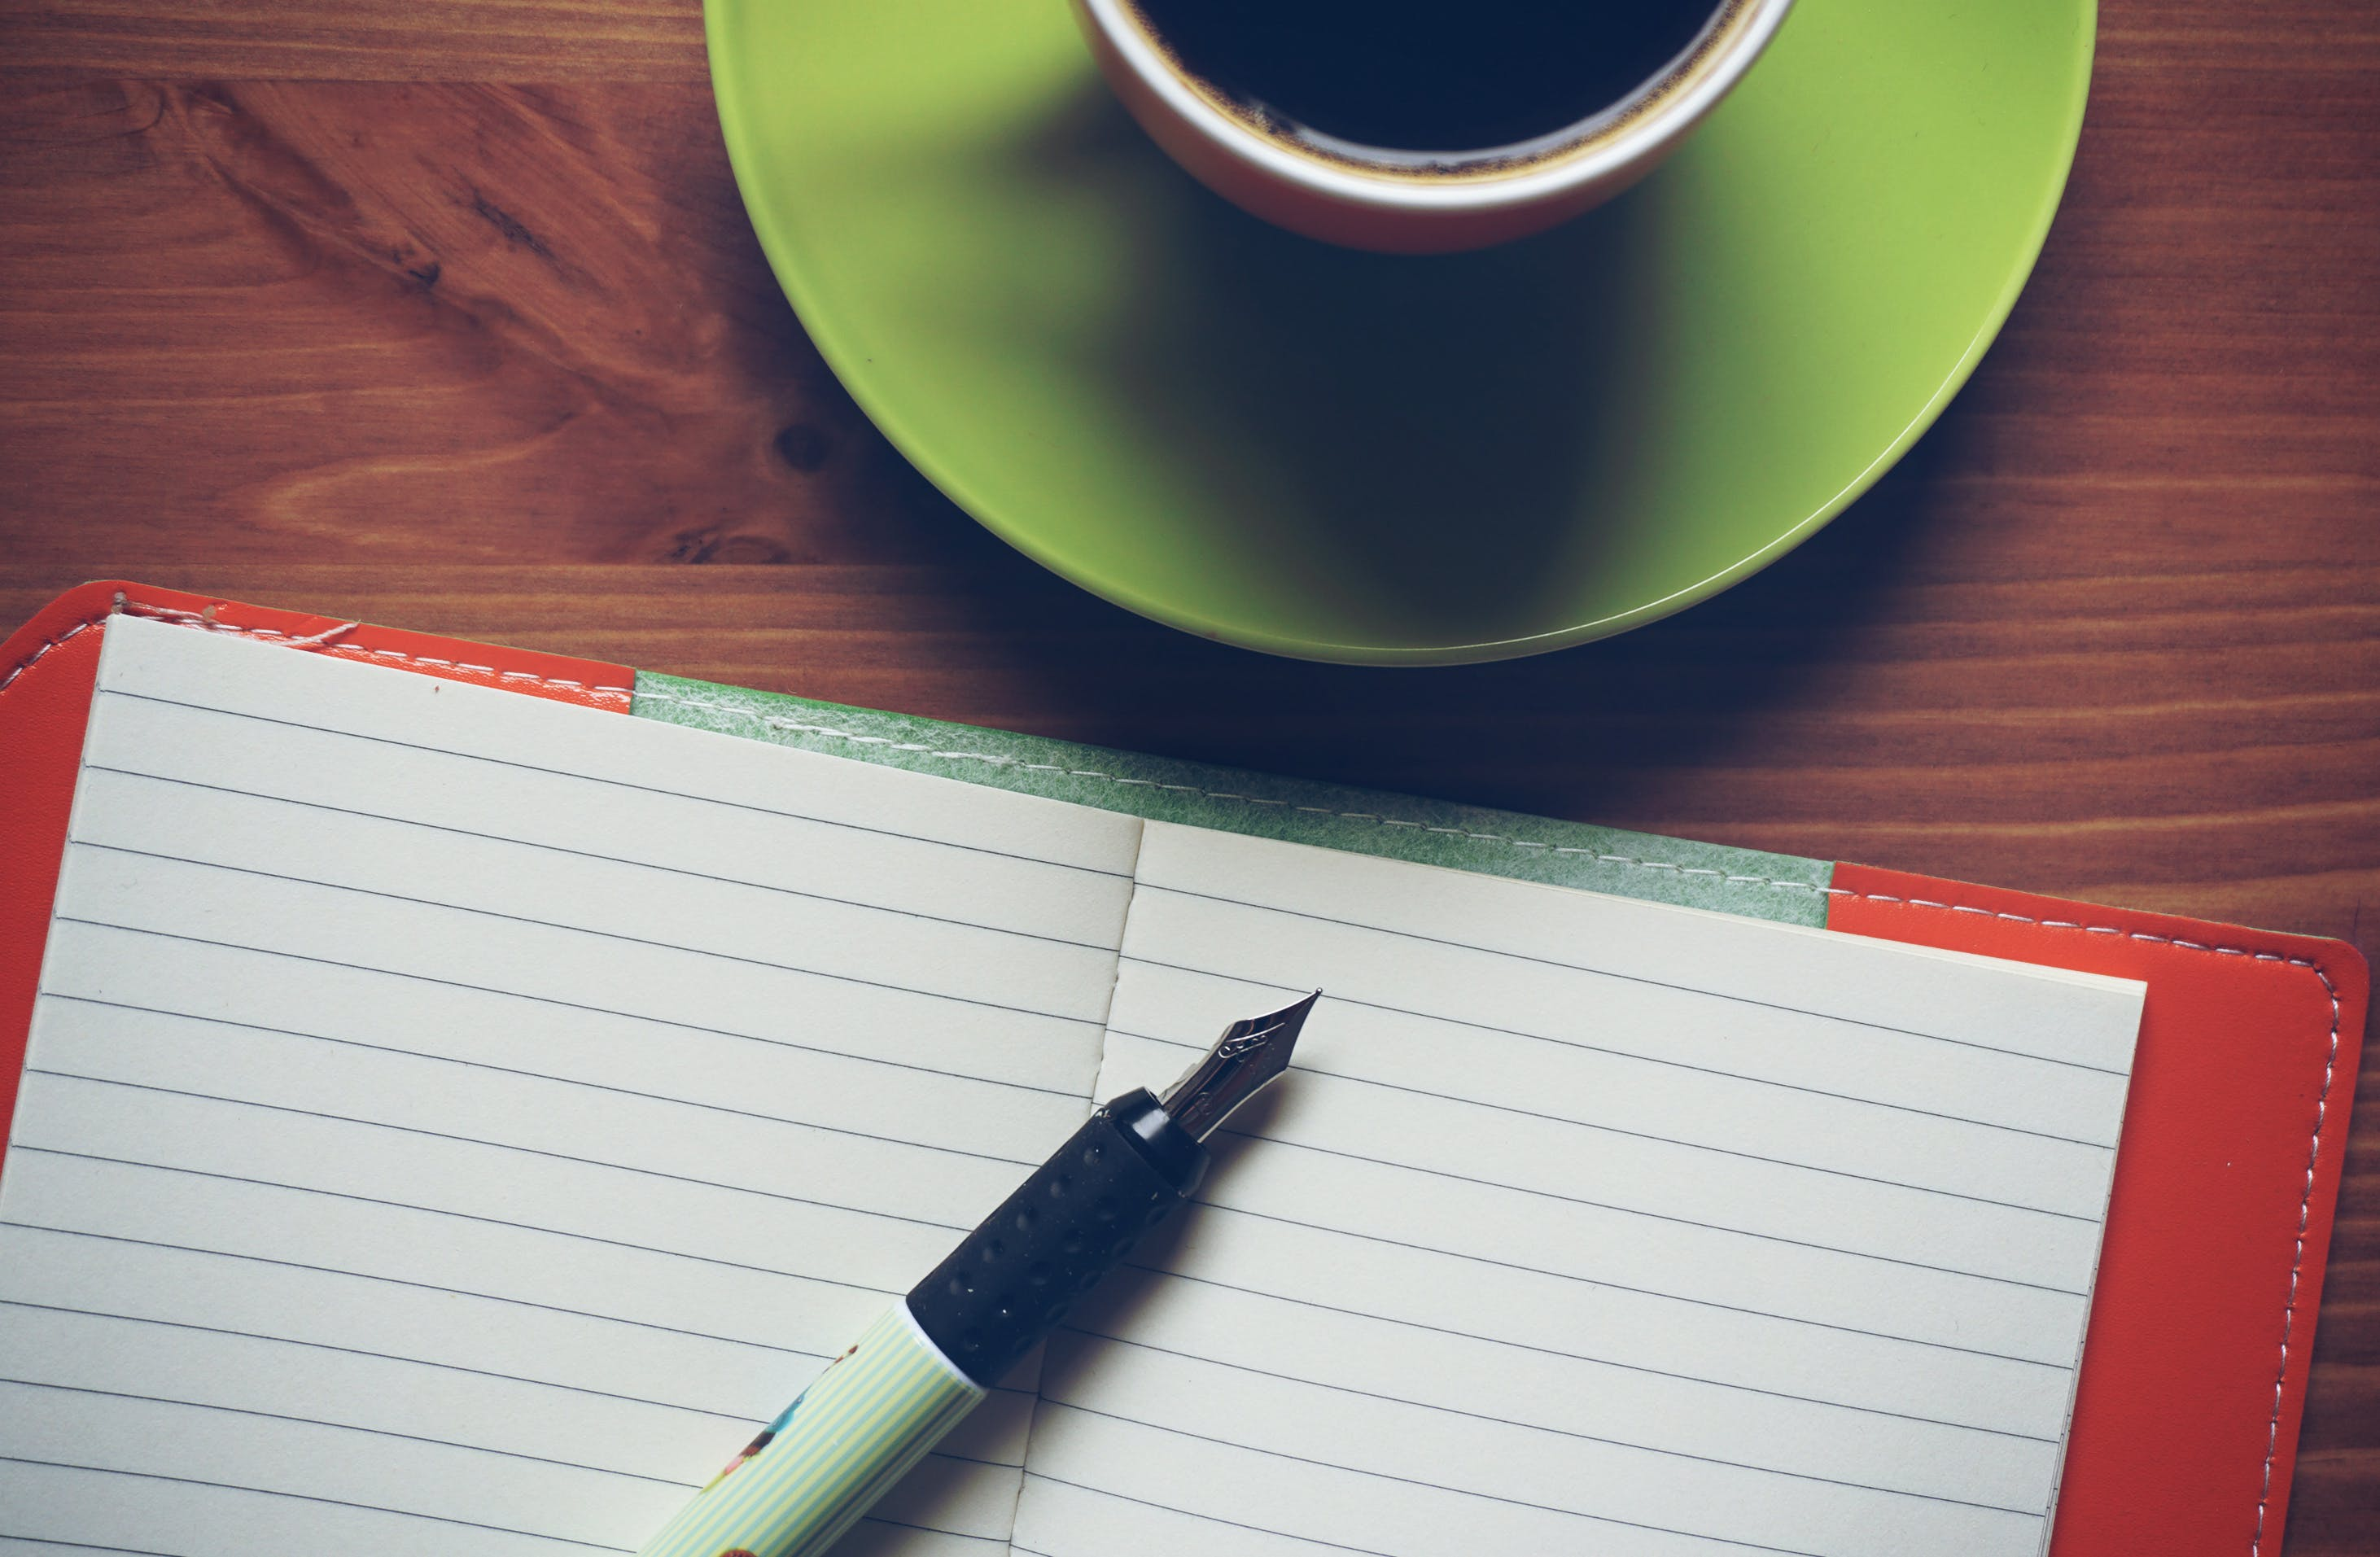 Fountain Pen on Top of Notebook Beside Drinking Mug